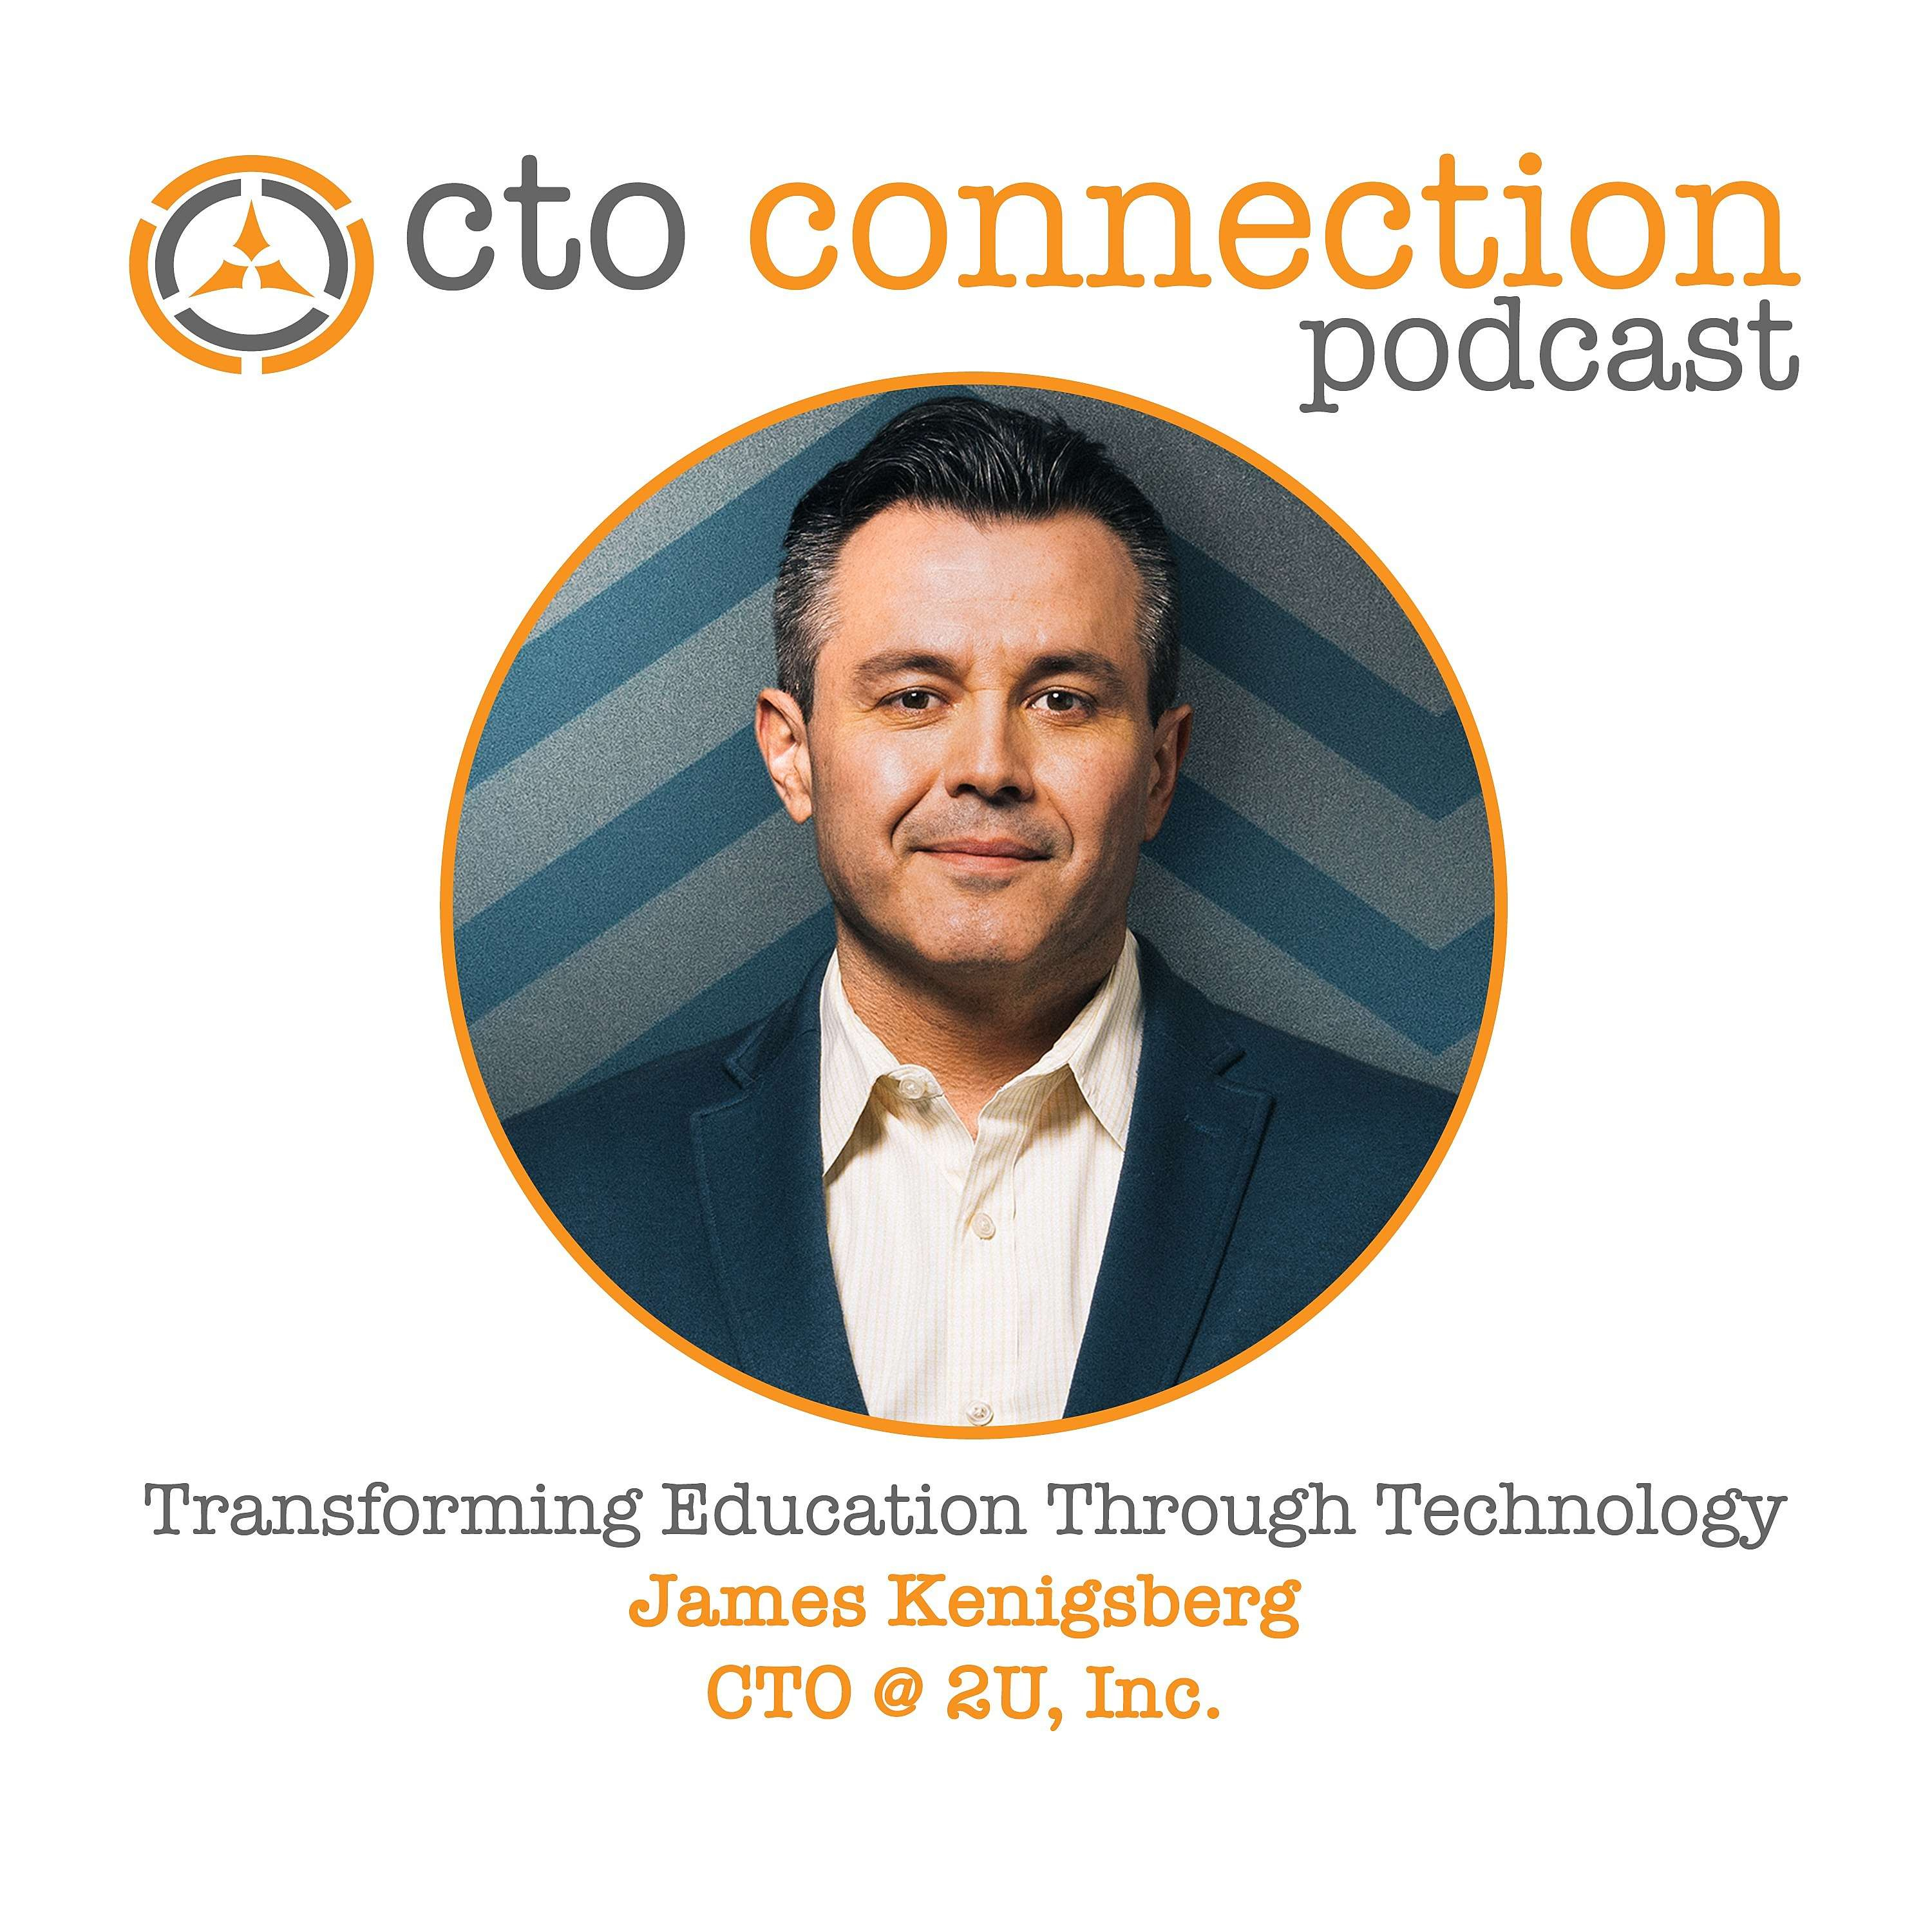 Transforming Education Through Technology with James Kenigsberg